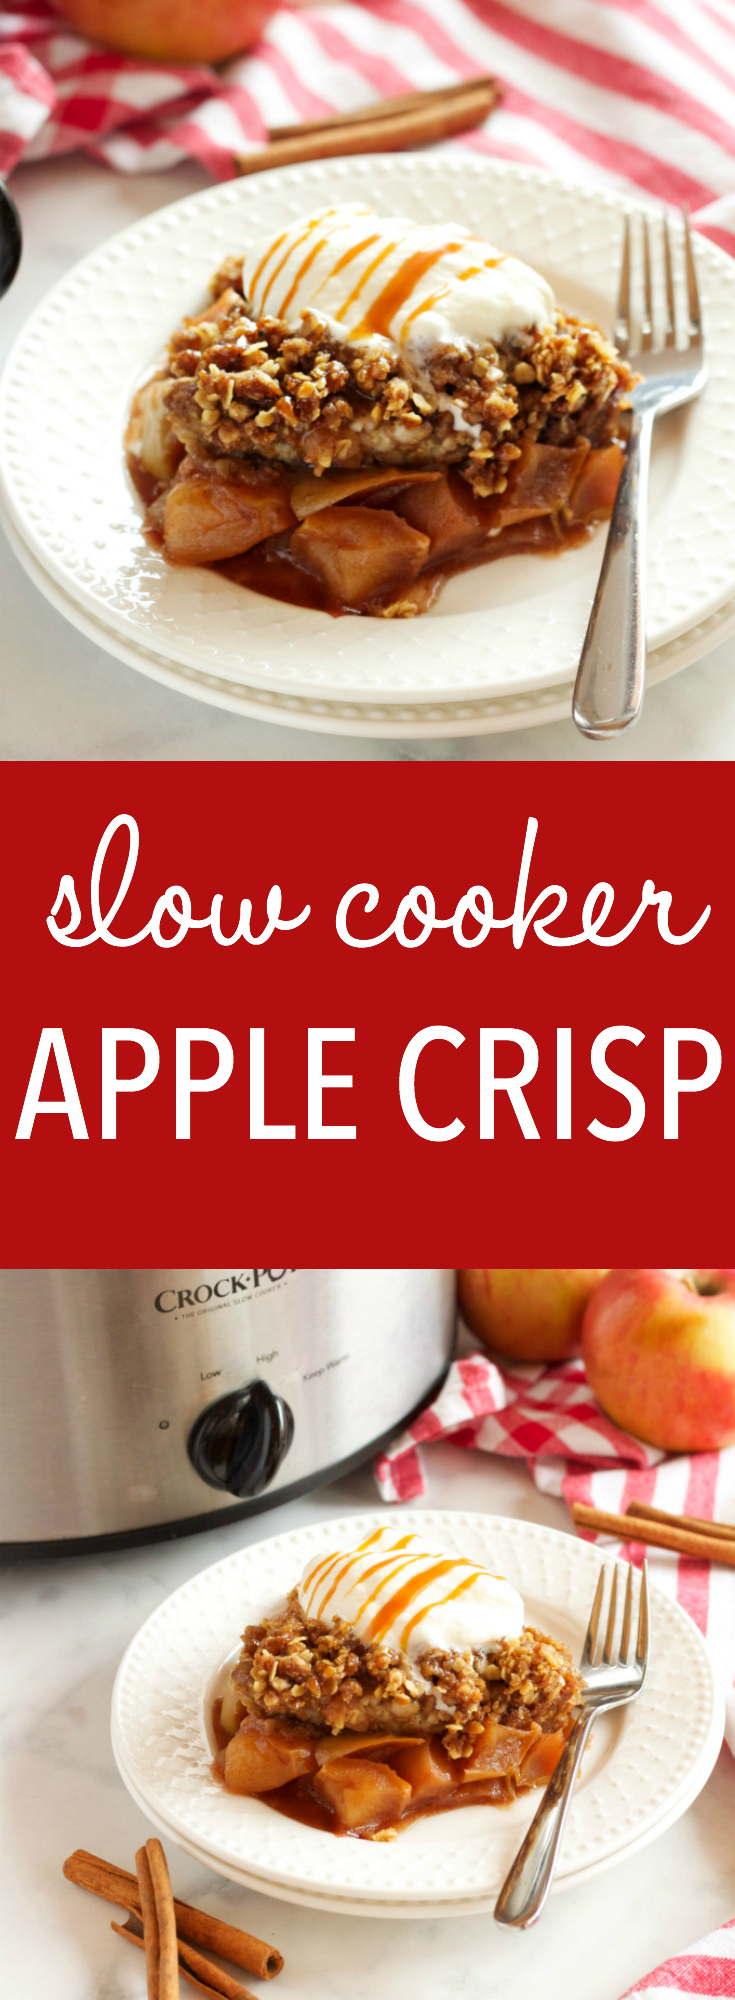 This Slow Cooker Apple Crisp recipe is an easy fall dessert made with fresh apples and a few basic pantry ingredients in the slow cooker or Crock Pot! Recipe from thebusybaker.ca! via @busybakerblog